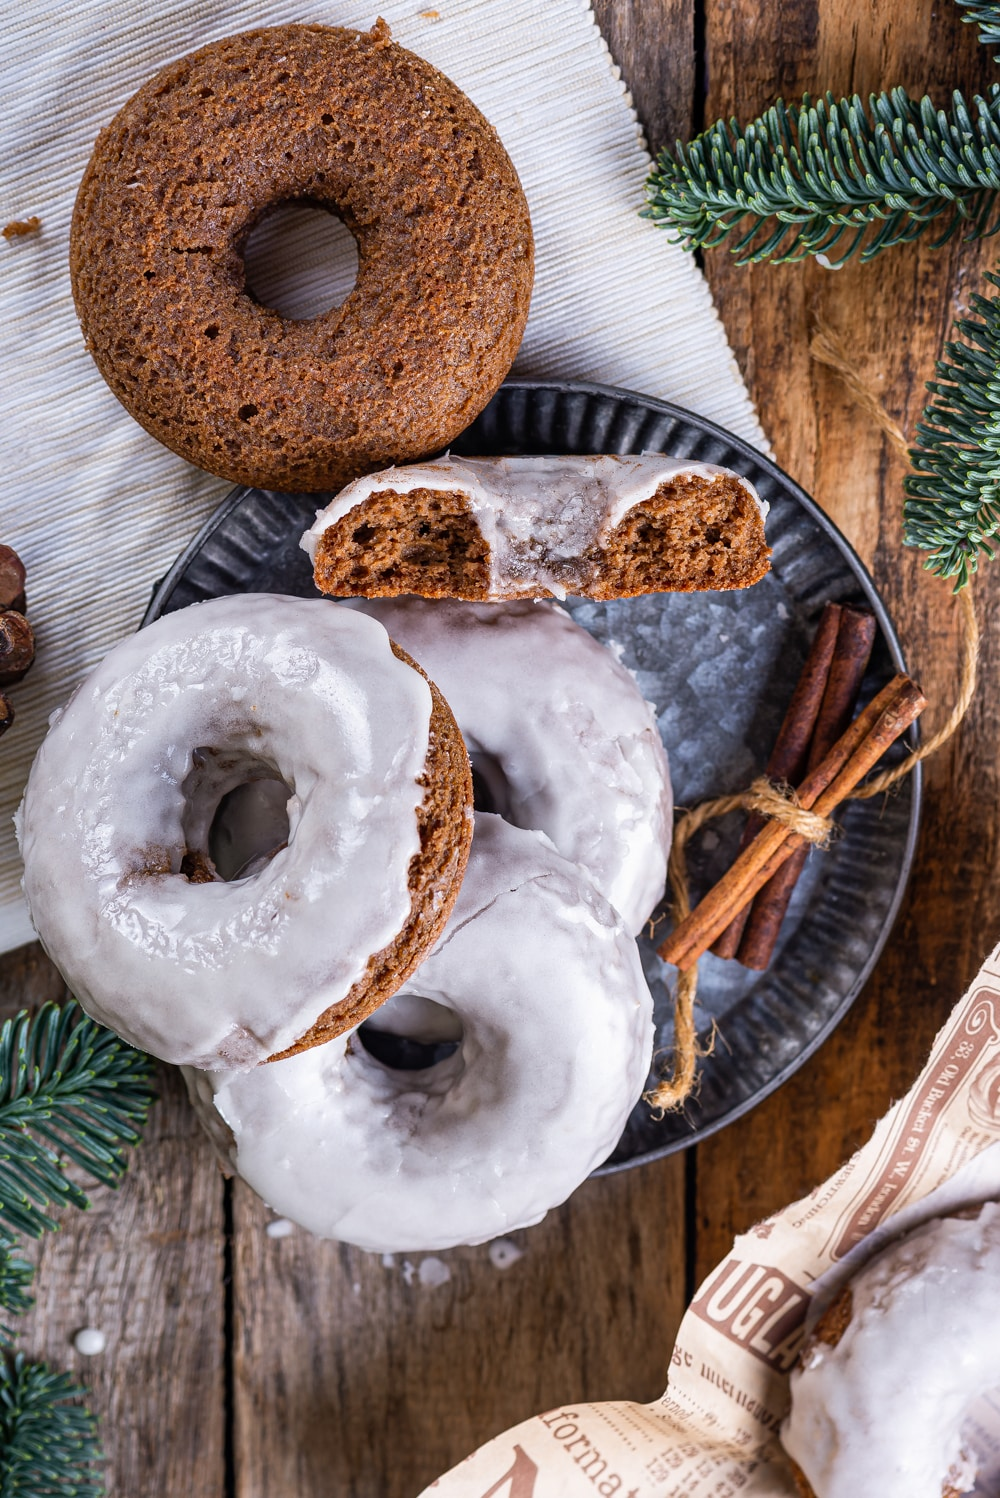 Three glazed gingerbread donuts stacked on top of one another sitting on a plate with half a gingerbread donut facing upwards behind the stack. An unglazed gingerbread donut is sitting on the edge of the plate behind the donuts.